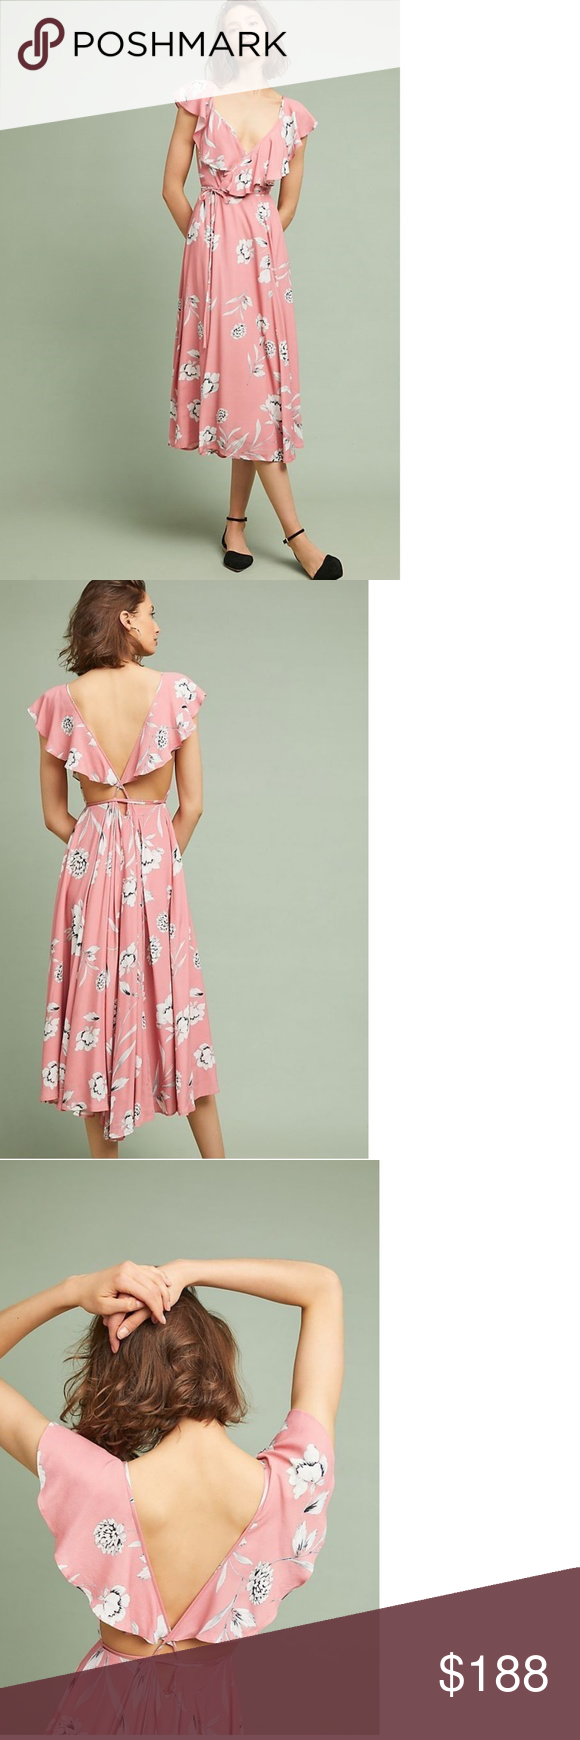 Yumi Kim Darby Wrap Dress New We Have Found This Style